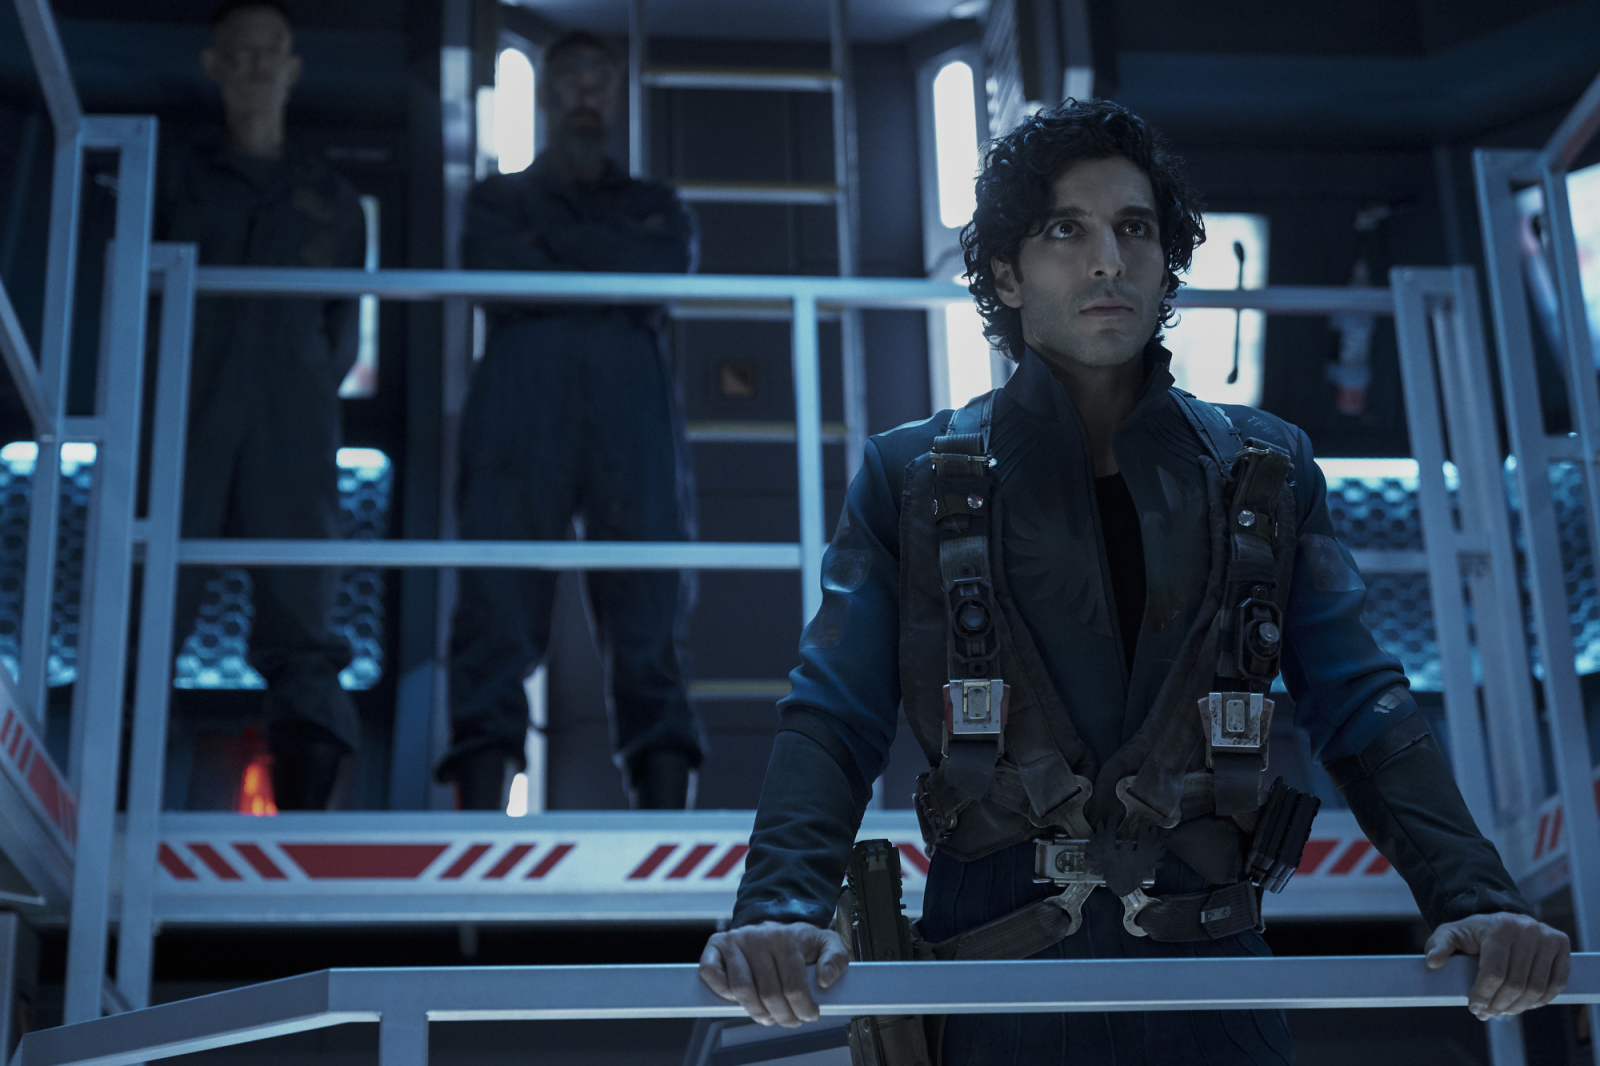 The Expanse Season 6 is not coming to Amazon in July 2021